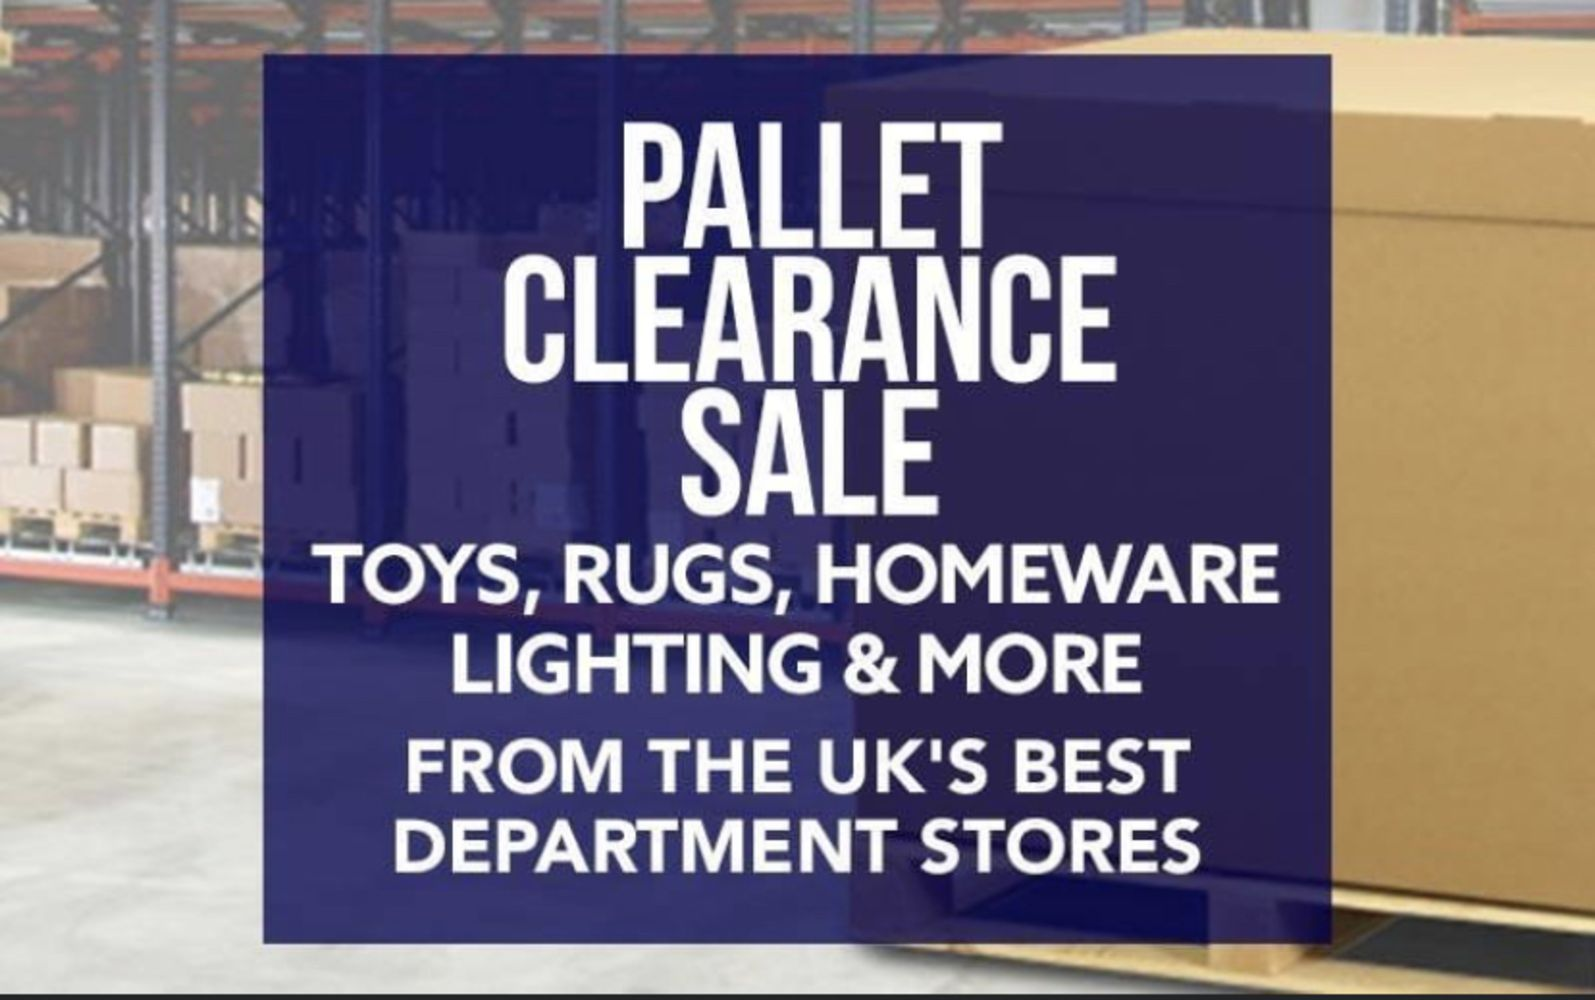 No Reserve - Pallet Clearance Sale! 29th March 2021